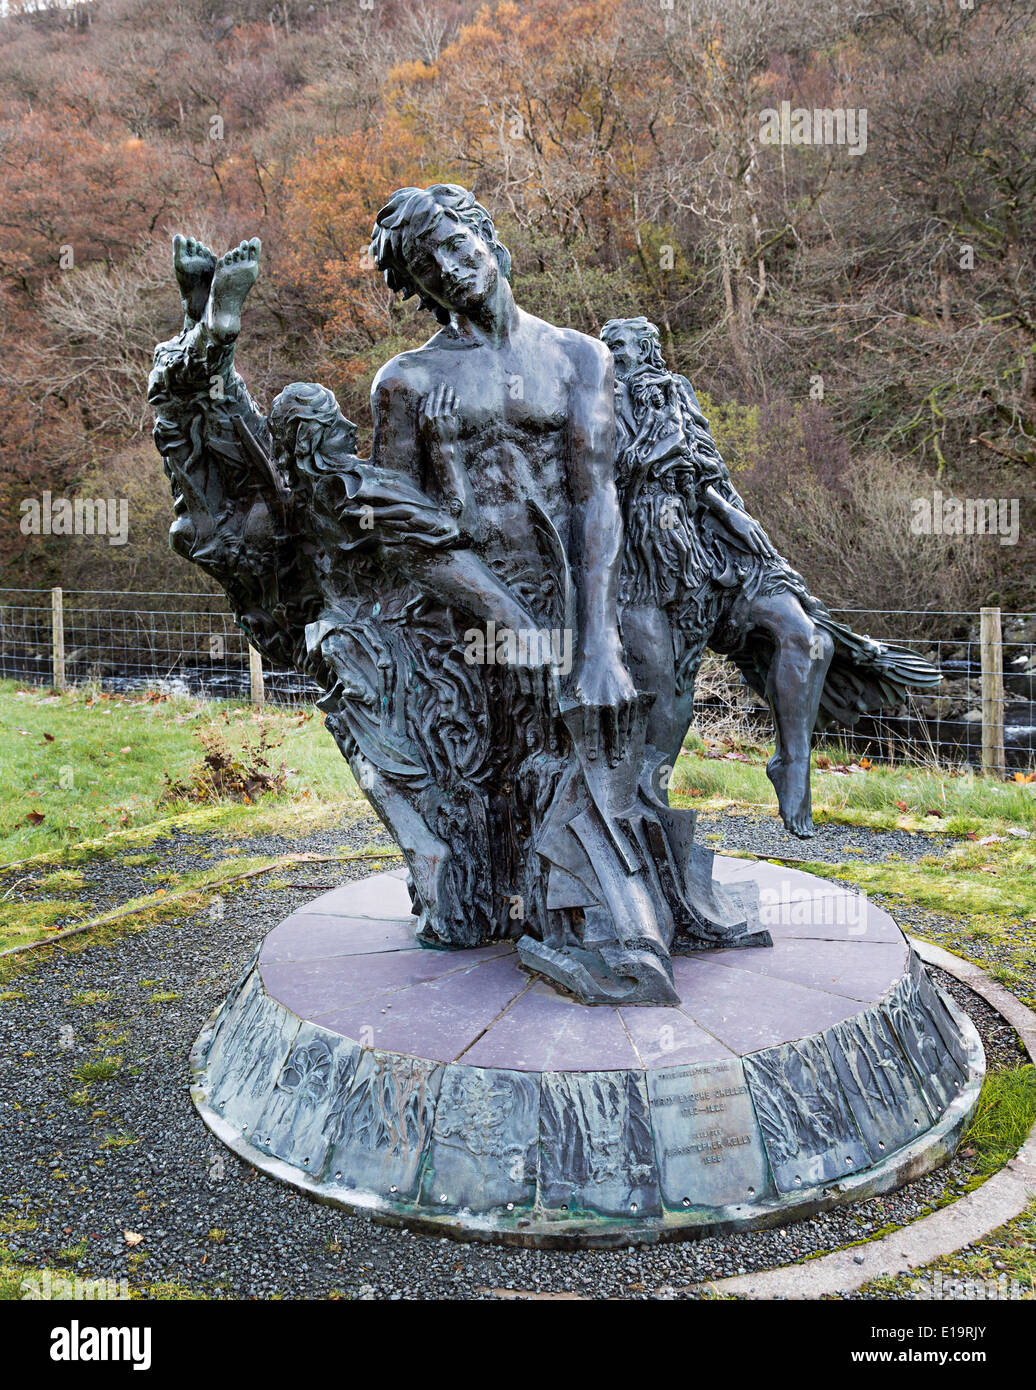 Statue of poet Shelly at Elan Valley reservoir Powys Wales UK - Stock Image